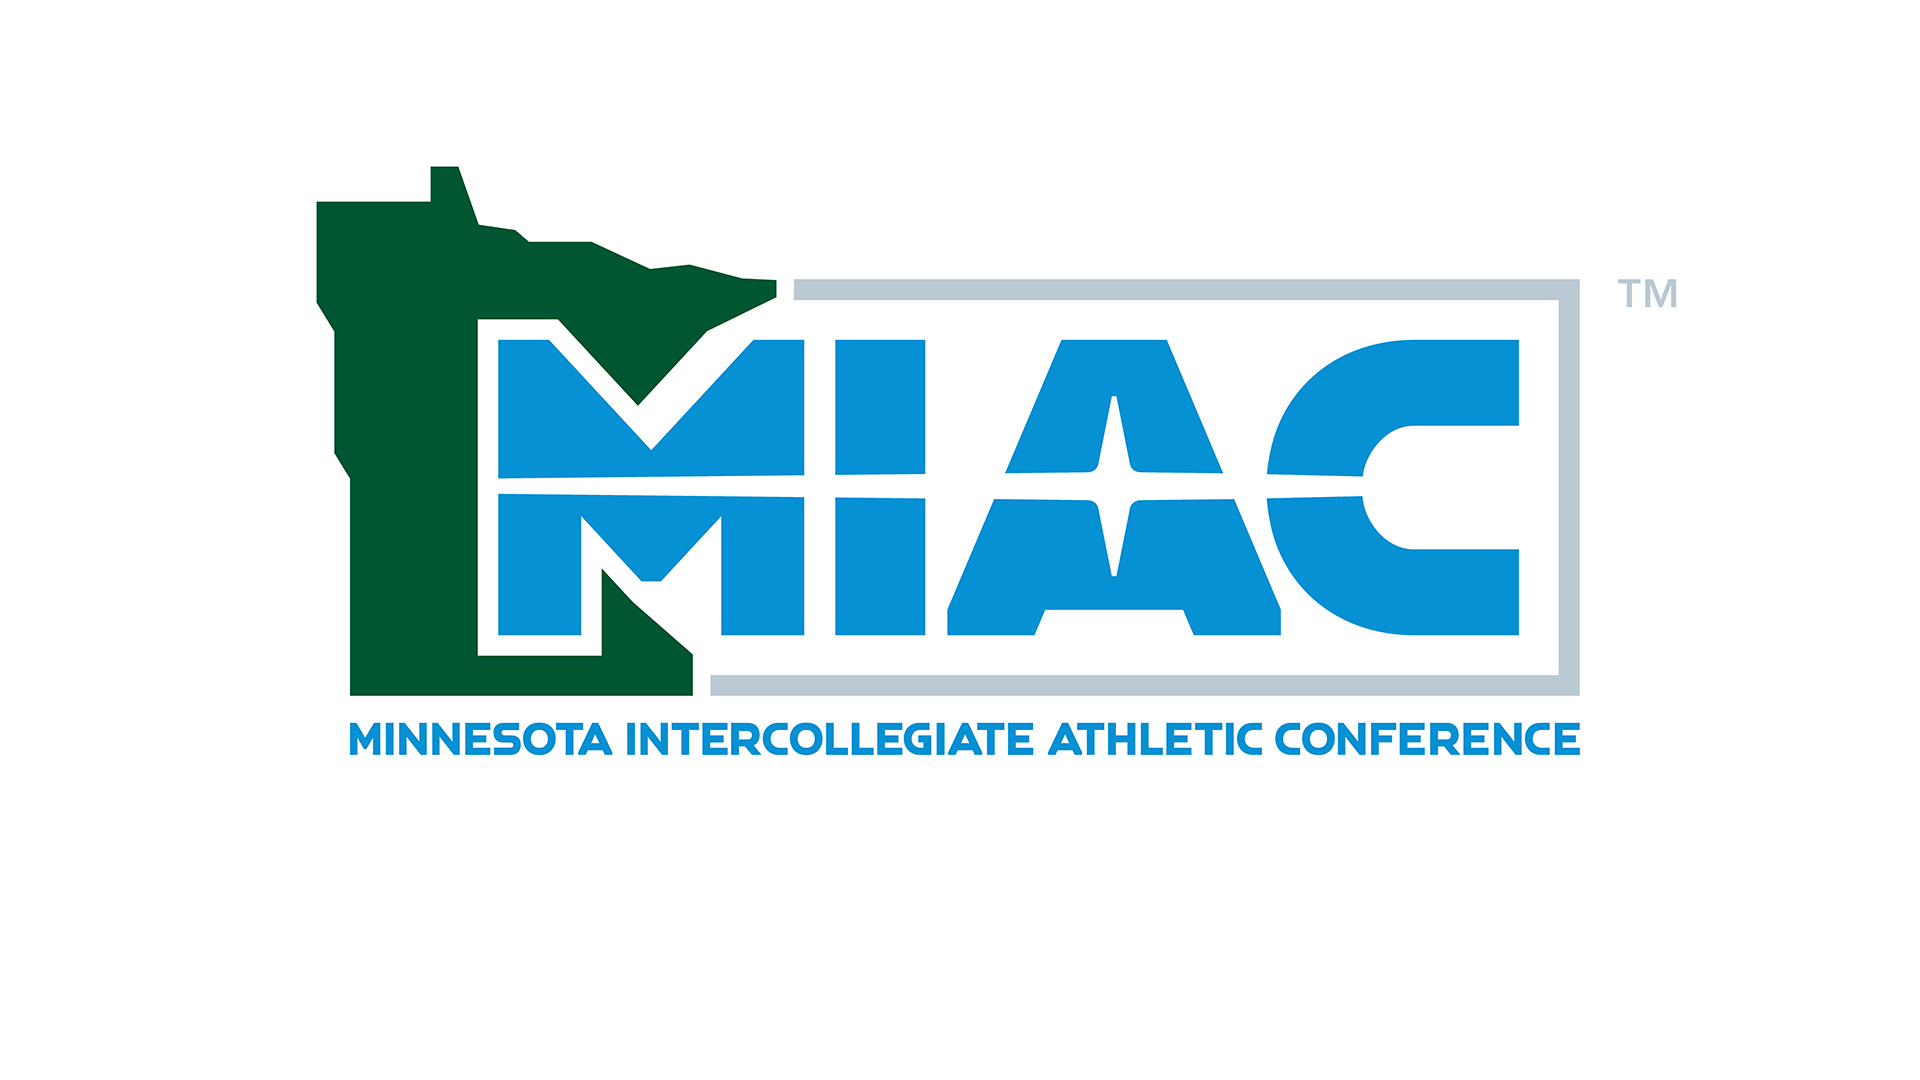 St Olaf Calendar 2021-22 The College of St. Scholastica to join MIAC in 2021; conference